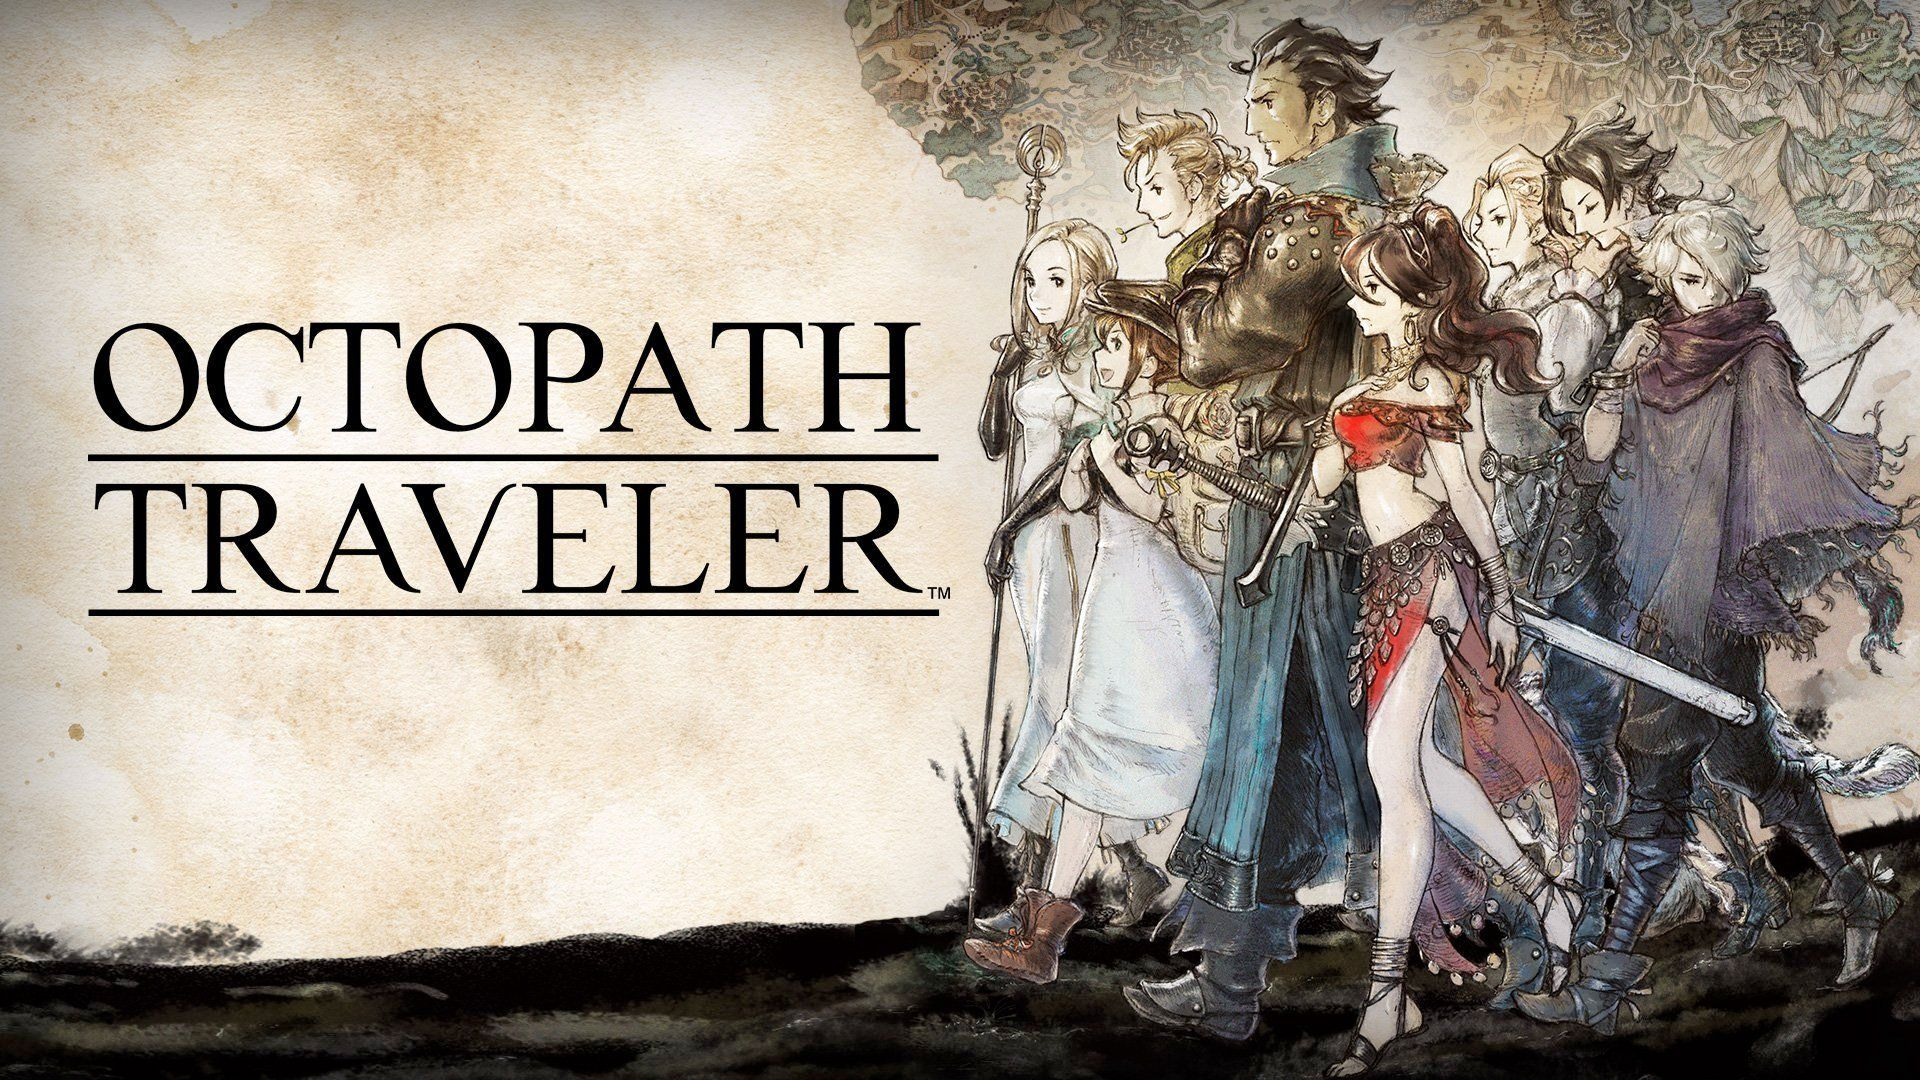 octopather traveler steam unlock time